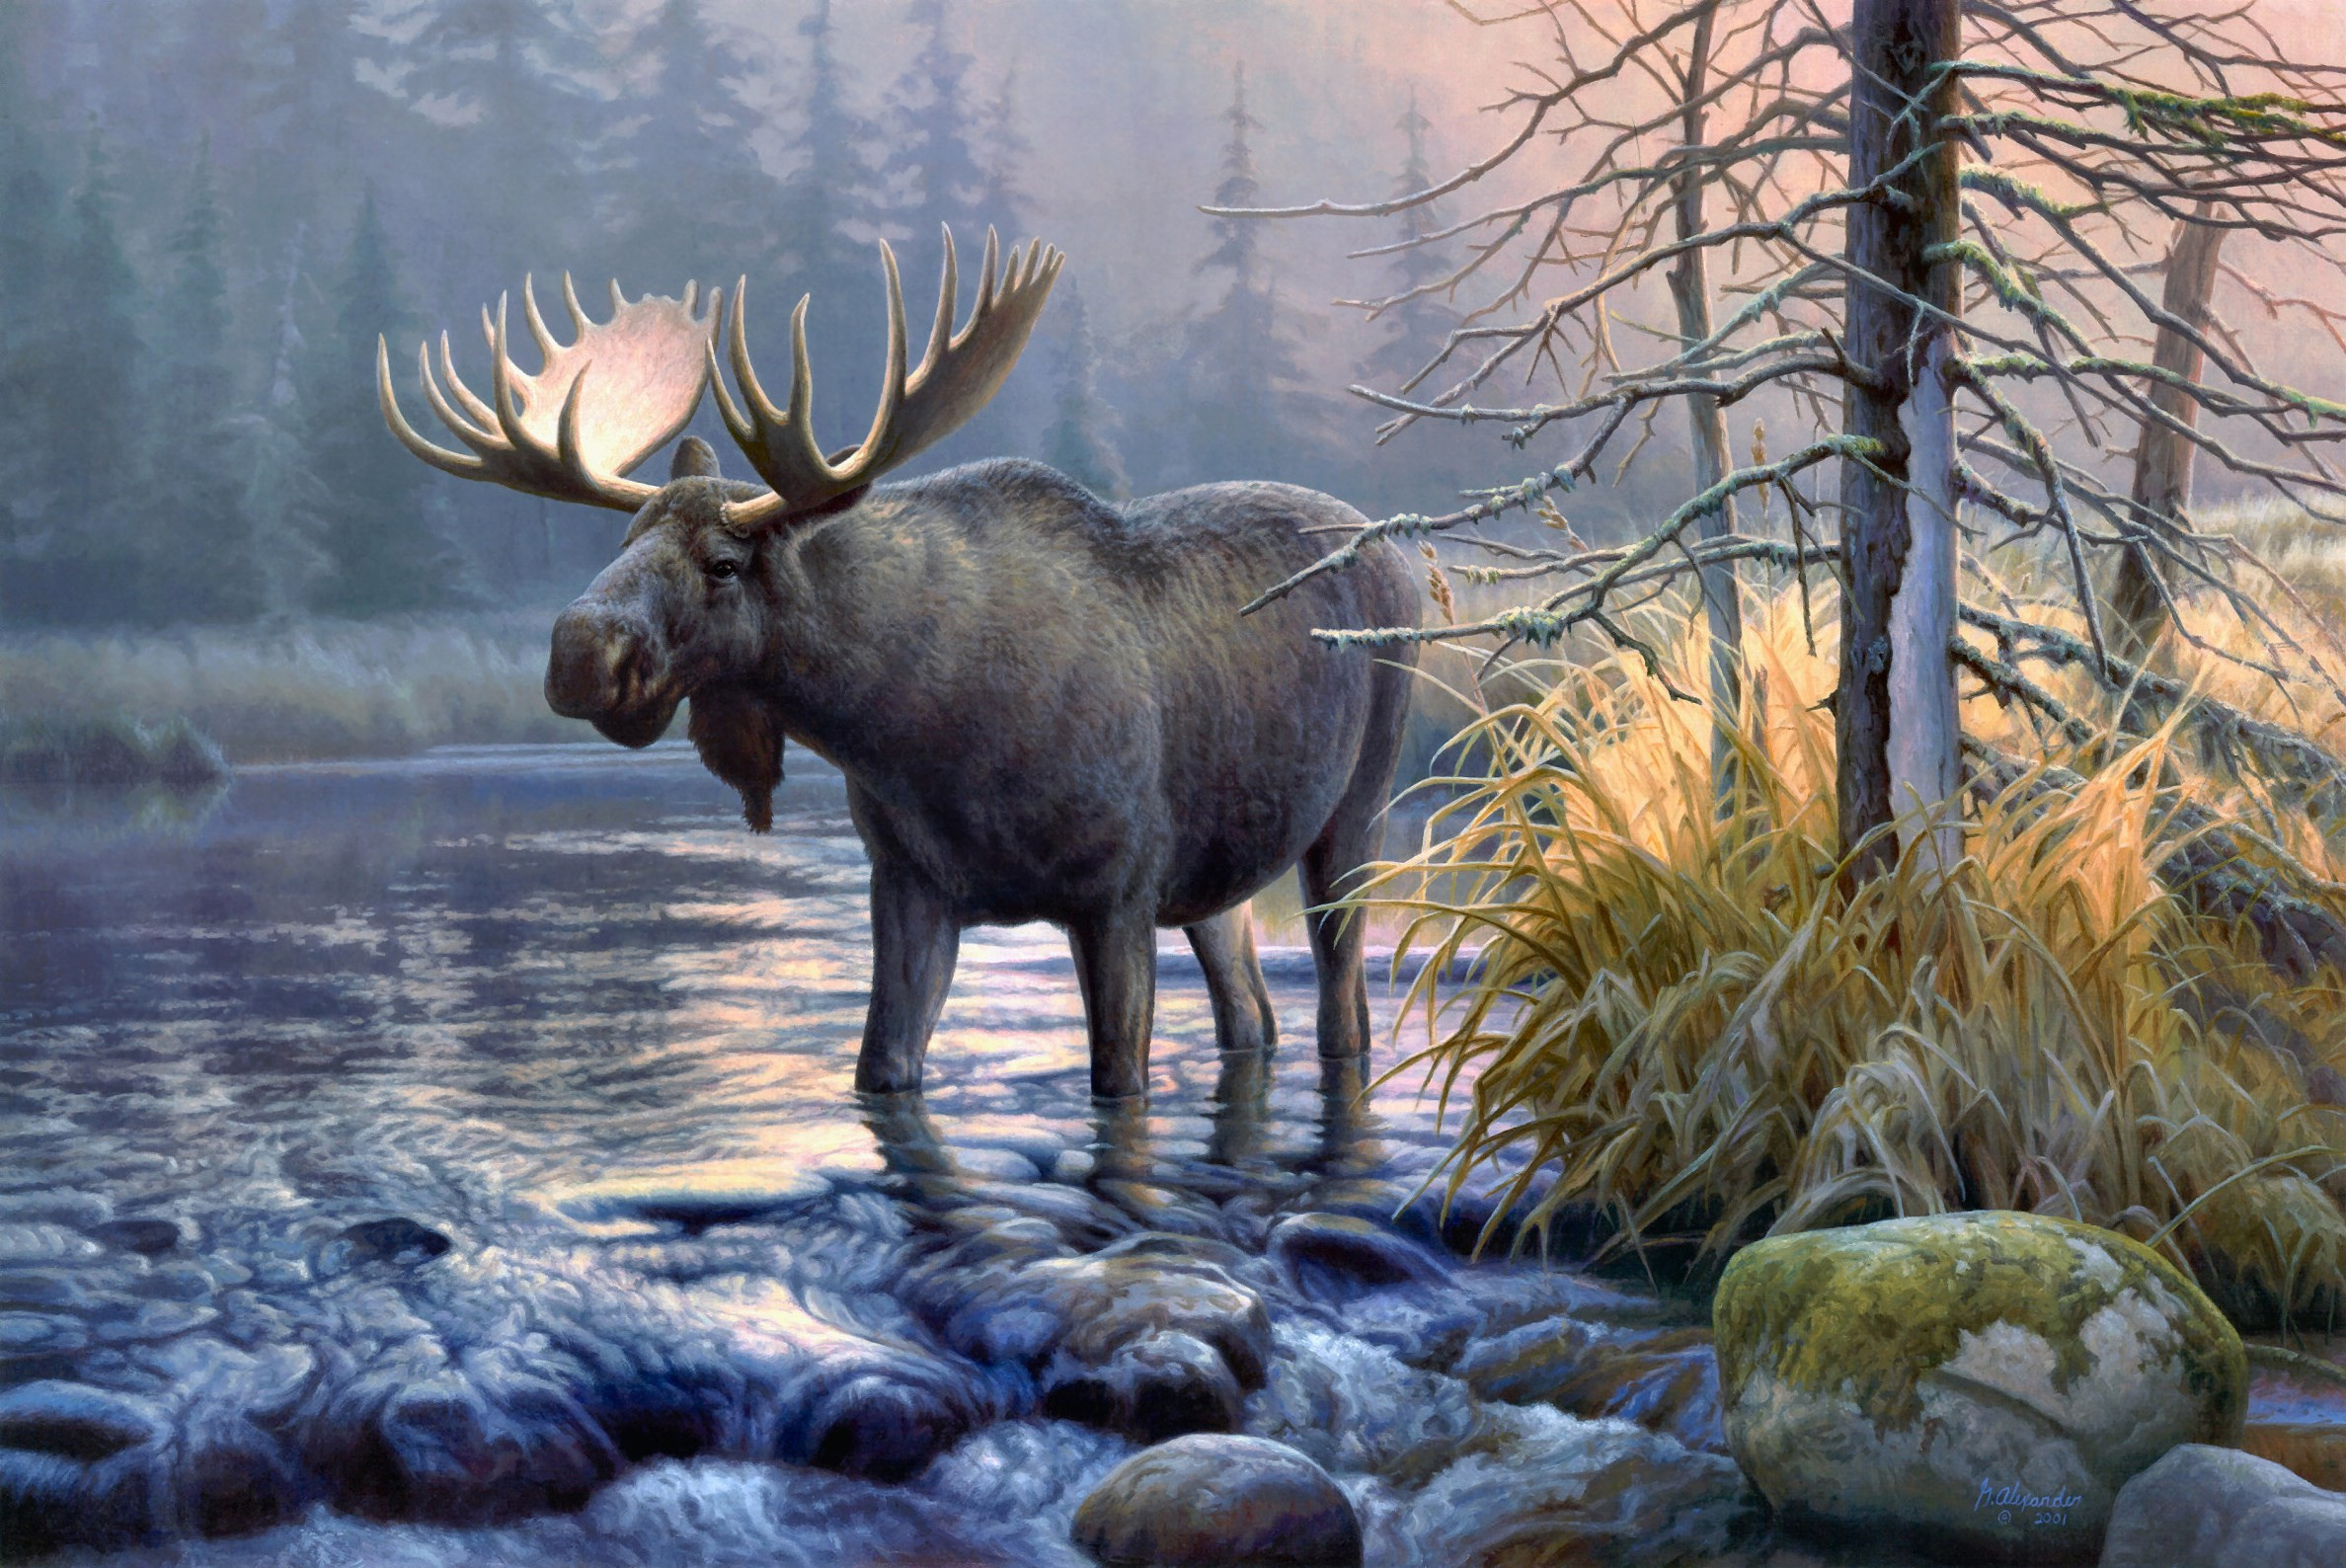 moose hd wallpaper - photo #10